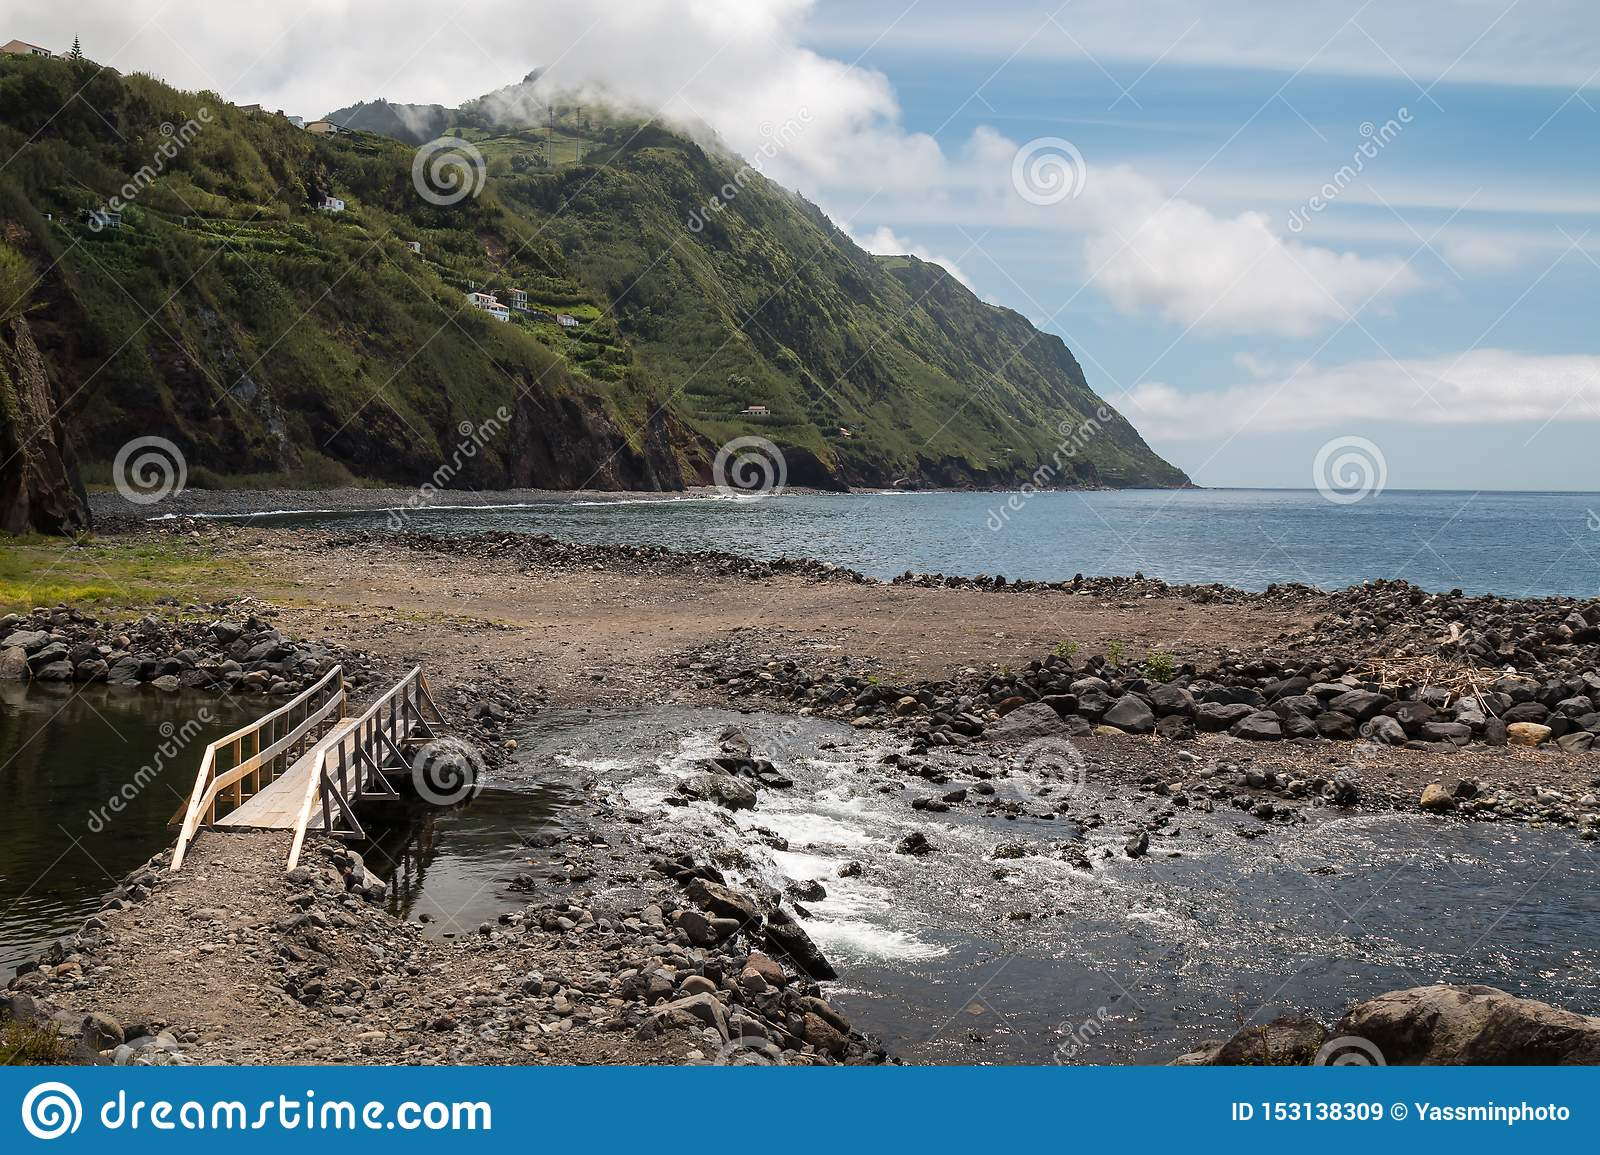 River flowing to the ocean, Povoacao, Sao Miguel